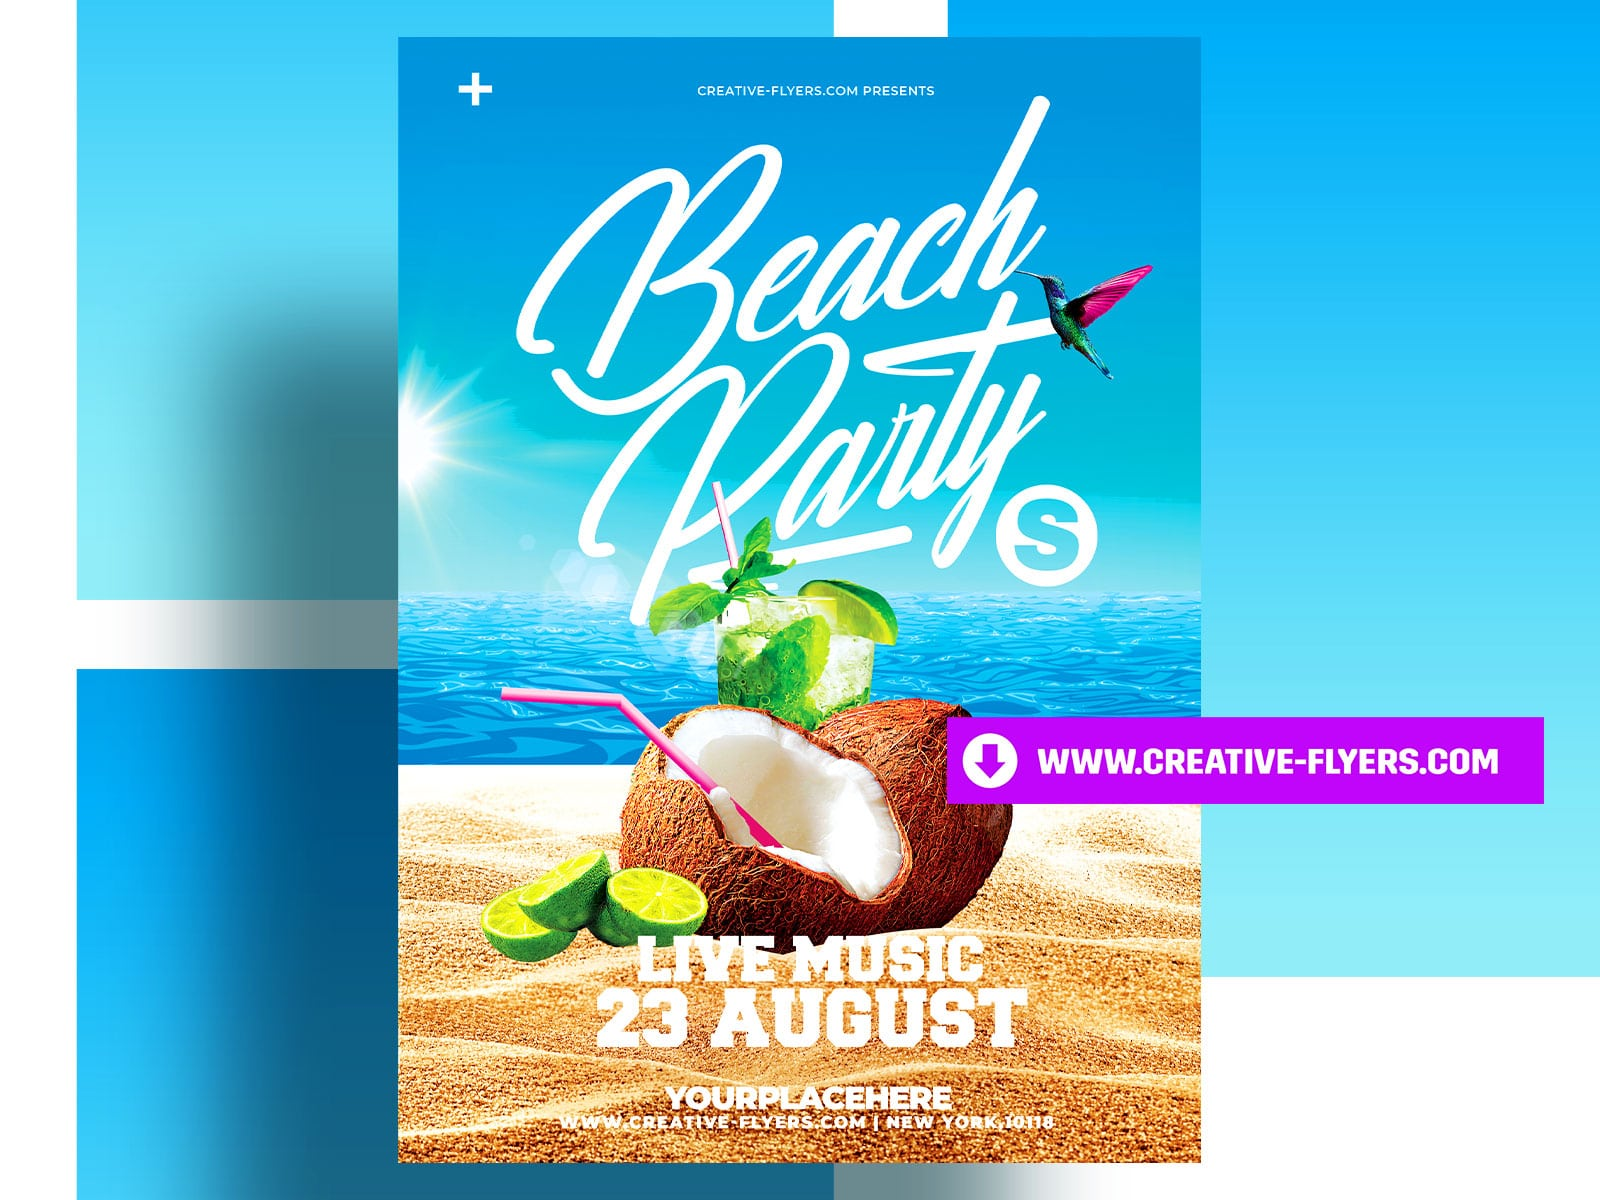 Photoshop poster for Summer Beach Party